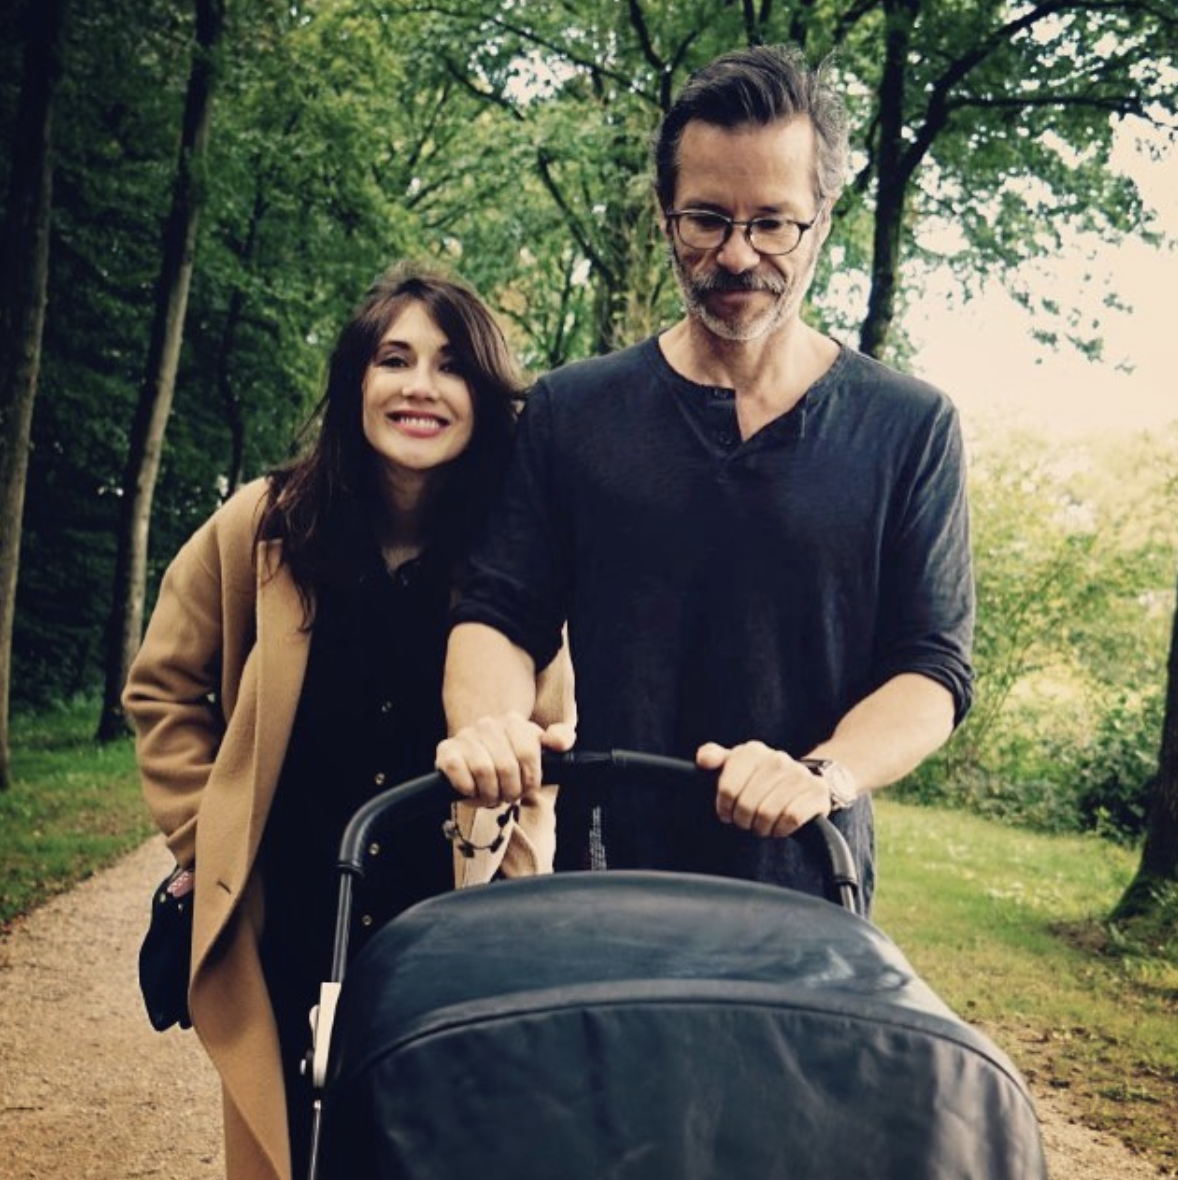 Carice Van Houten (Melisandre) and Guy Pearce Carice and her husband Guy welcomed their son Monte in August 2016.